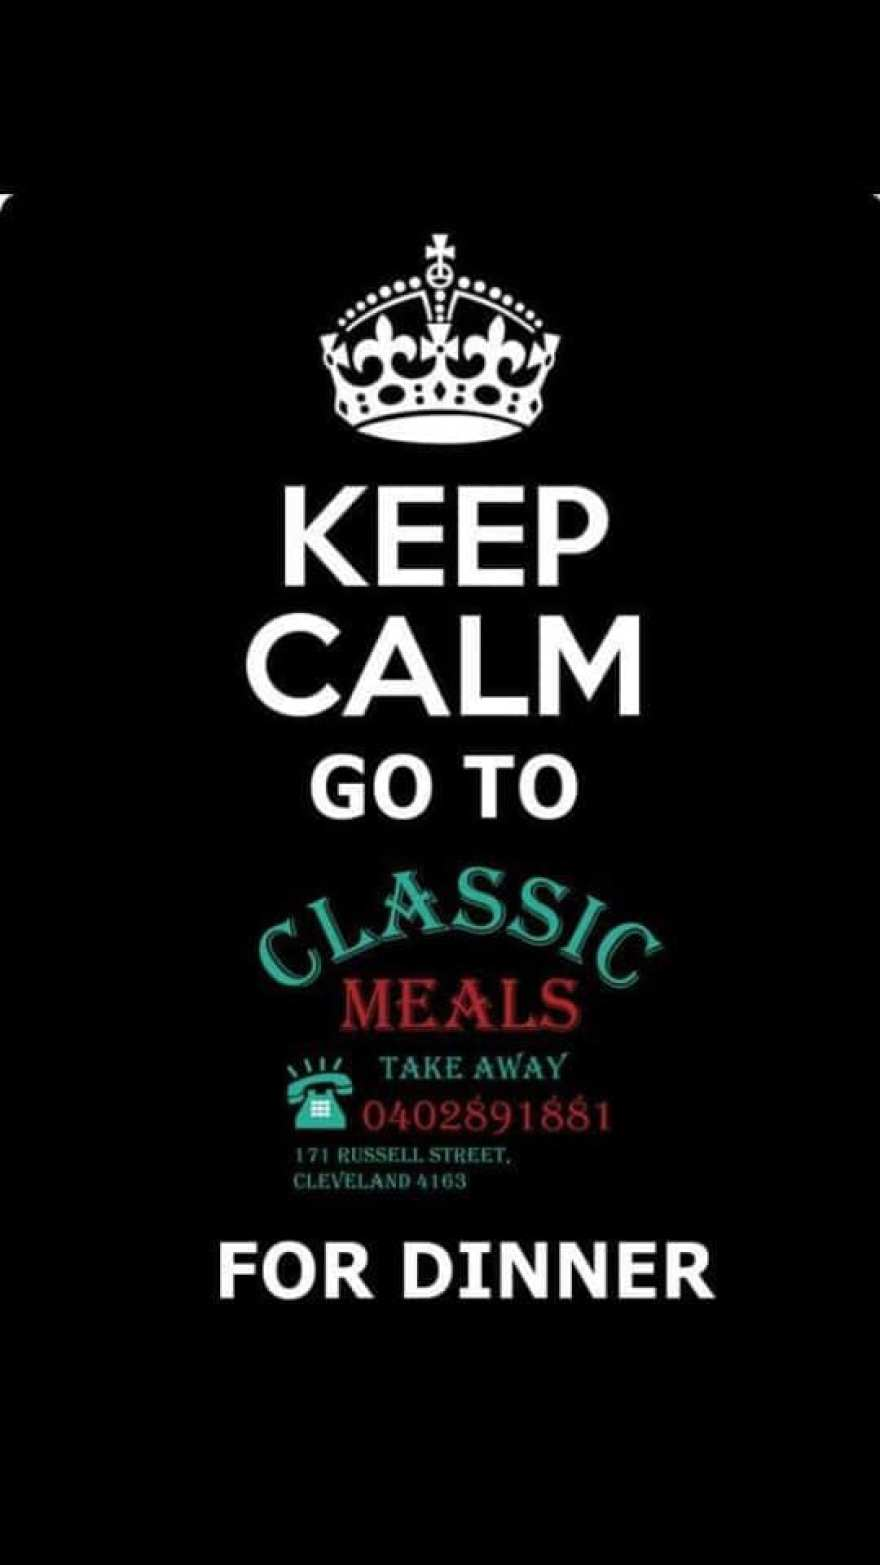 Keep Calm and got to Classic Meals for Dinner